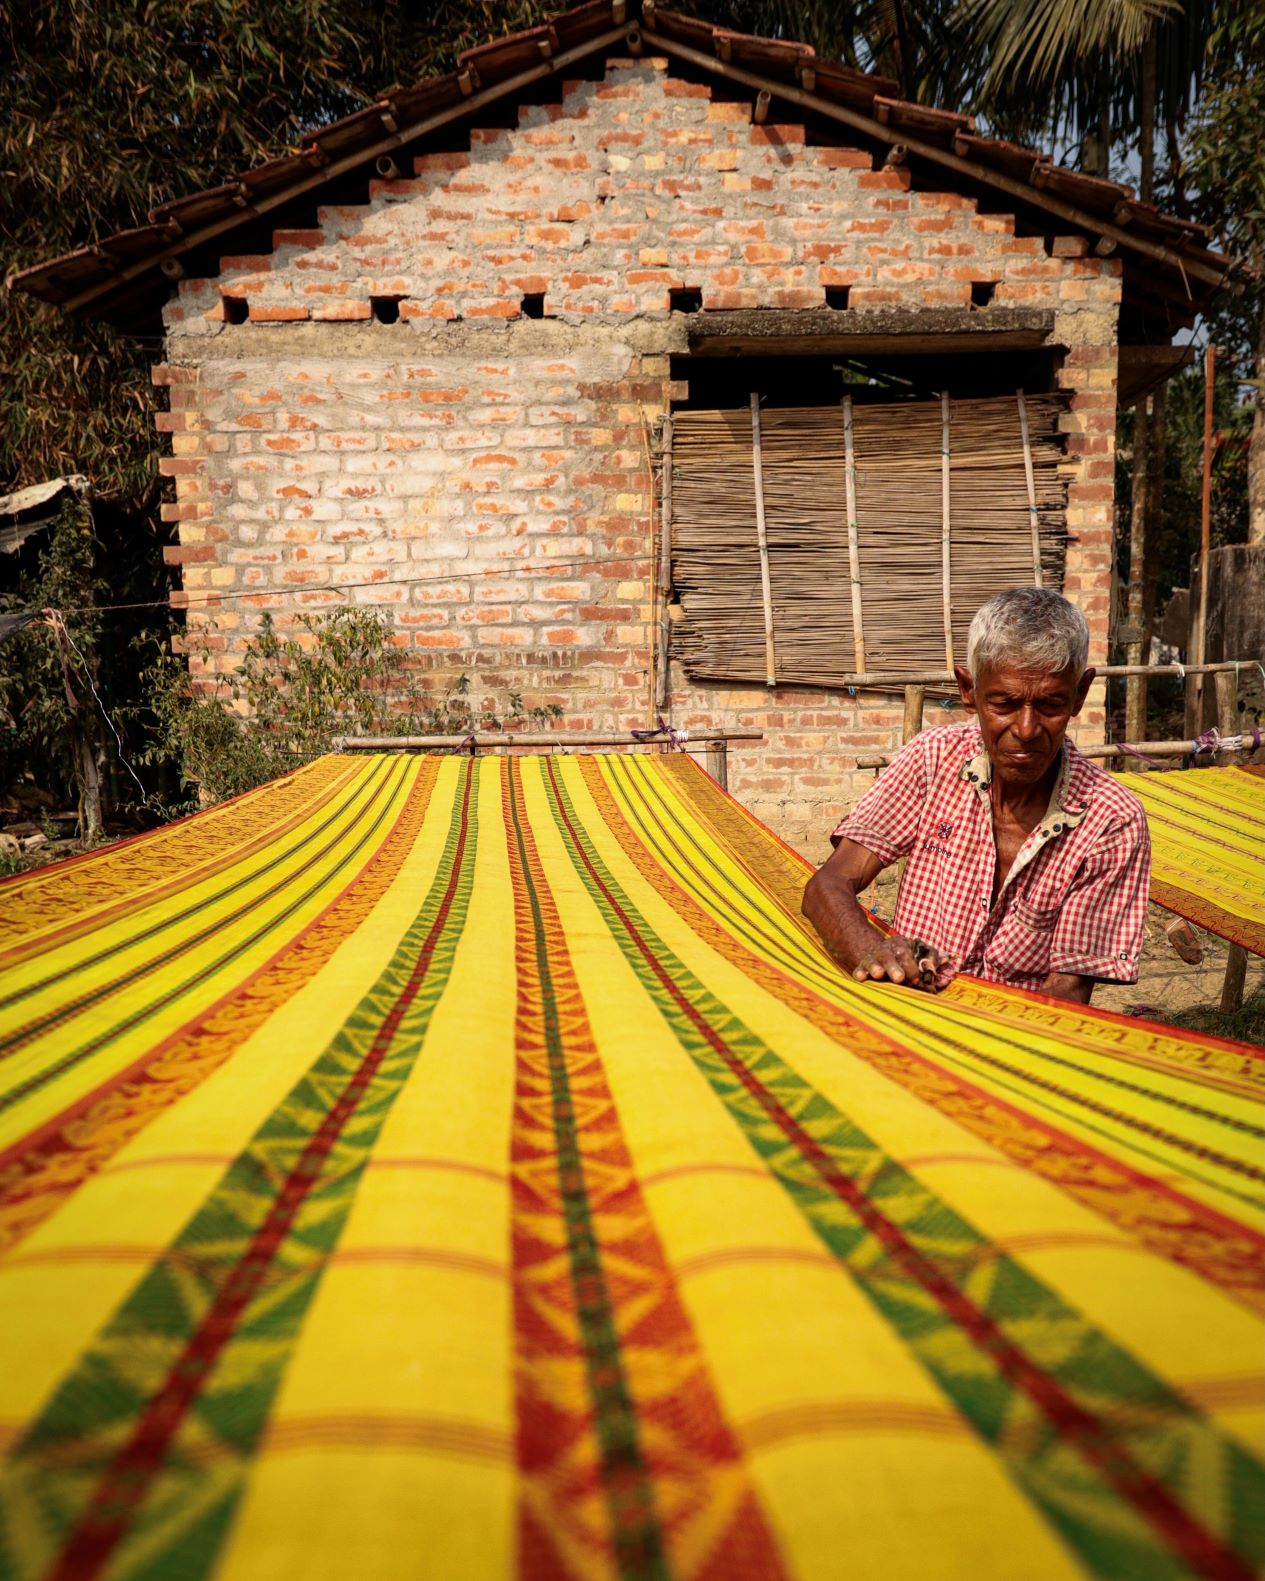 A man cleaning saree and making it ready for selling in the market. Shantipur is known for dyeing process and making of sarees